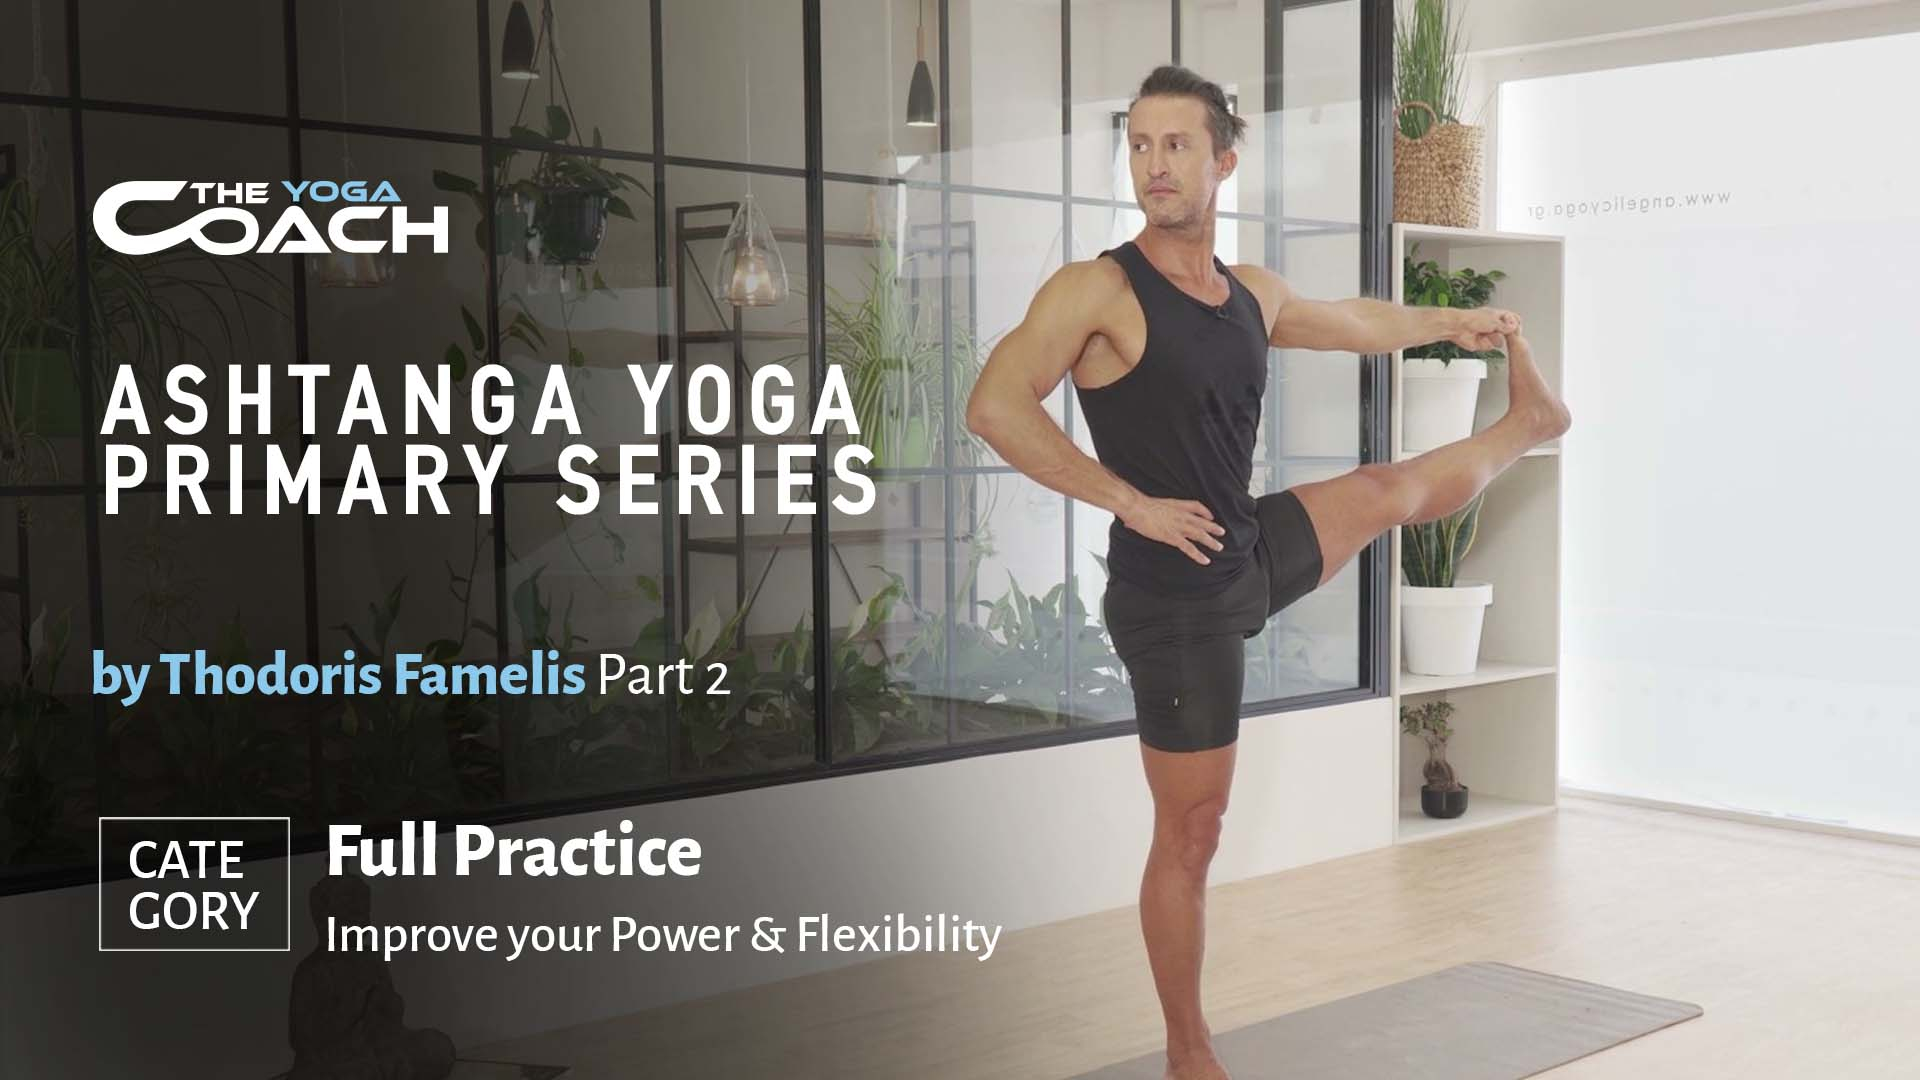 Ashtanga Yoga Primary Series Part 2